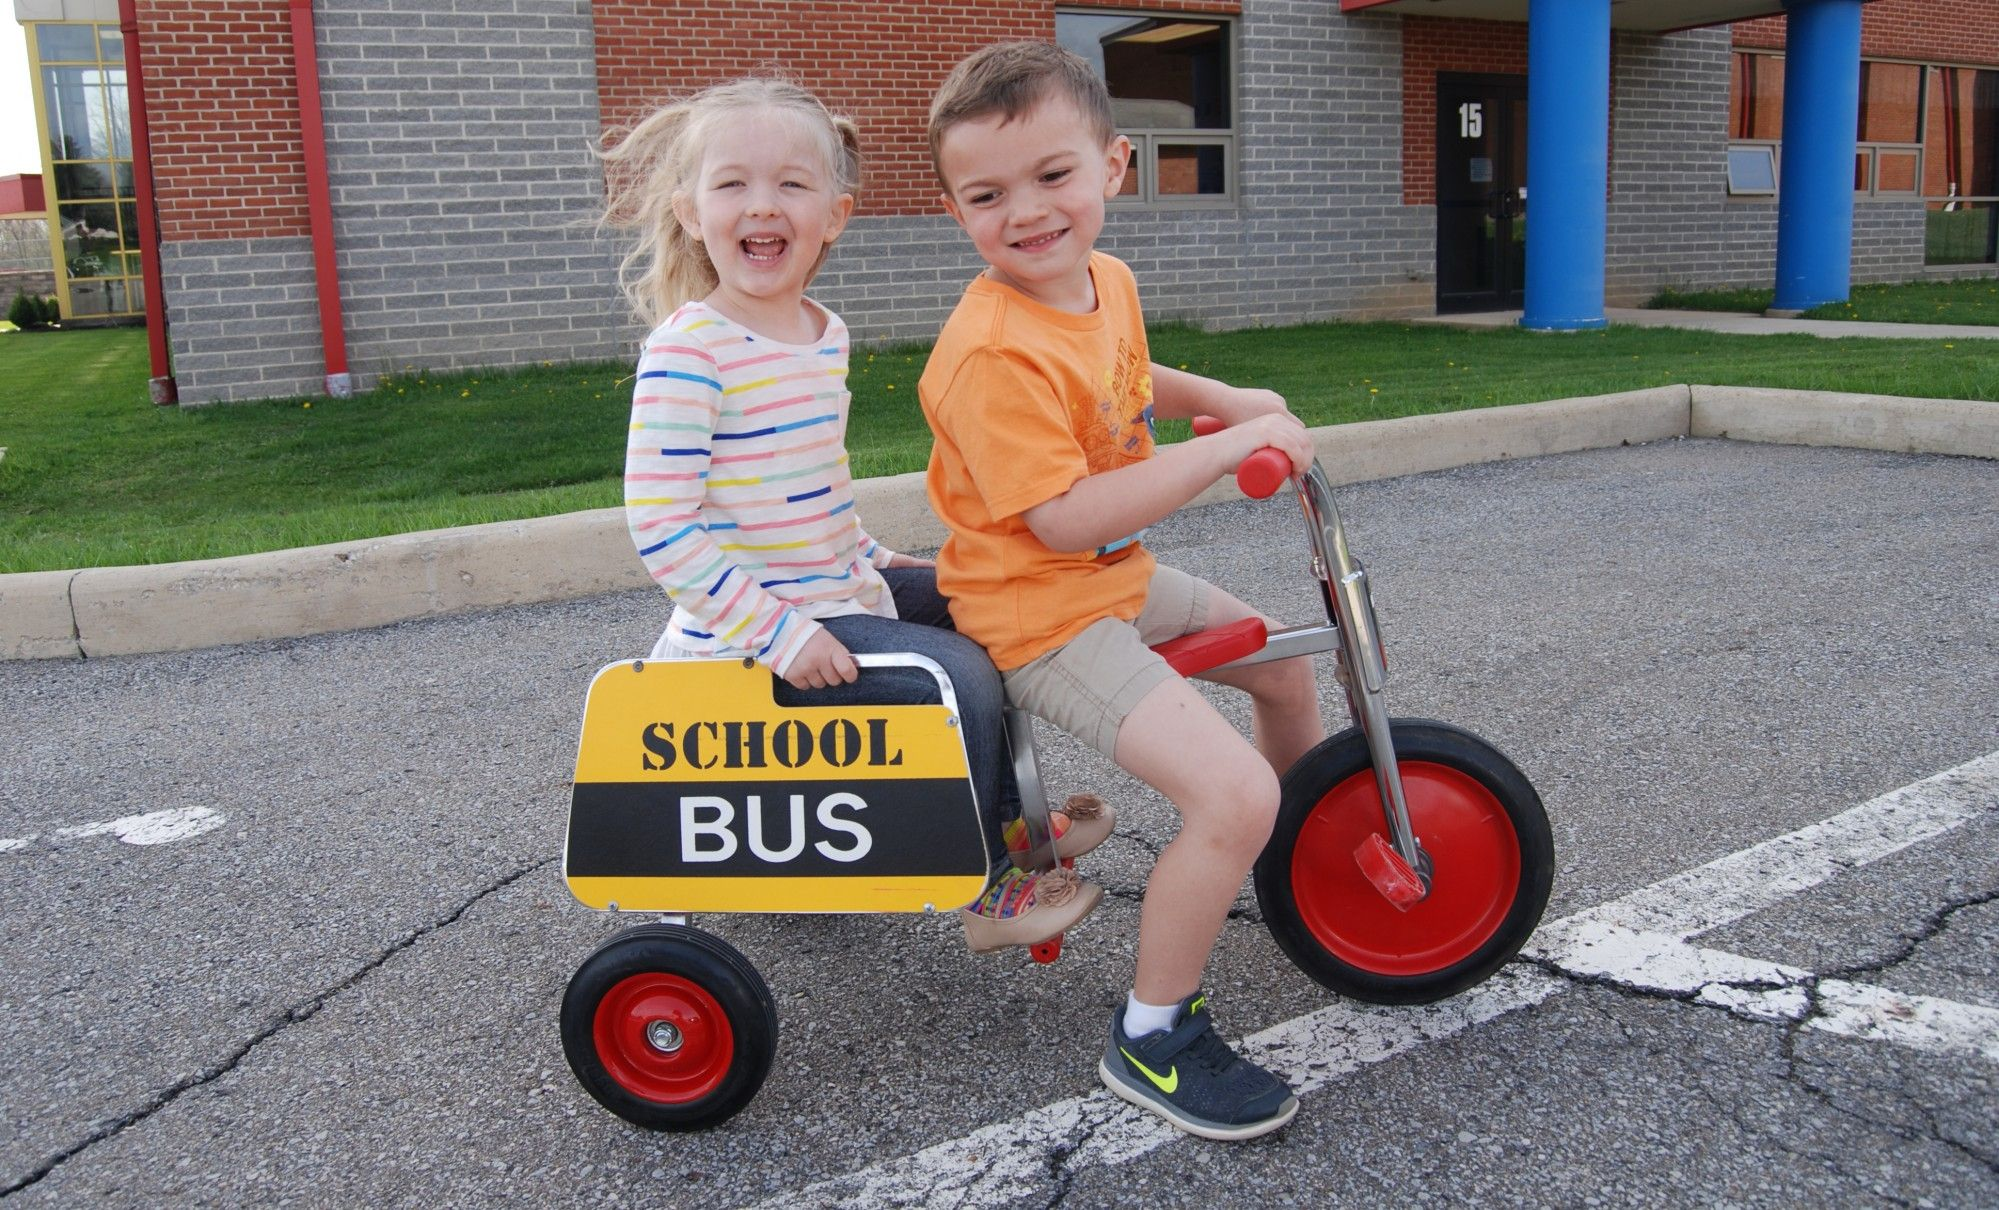 girl, boy, bike, prek, mansfield christian school, mansfield, ohio